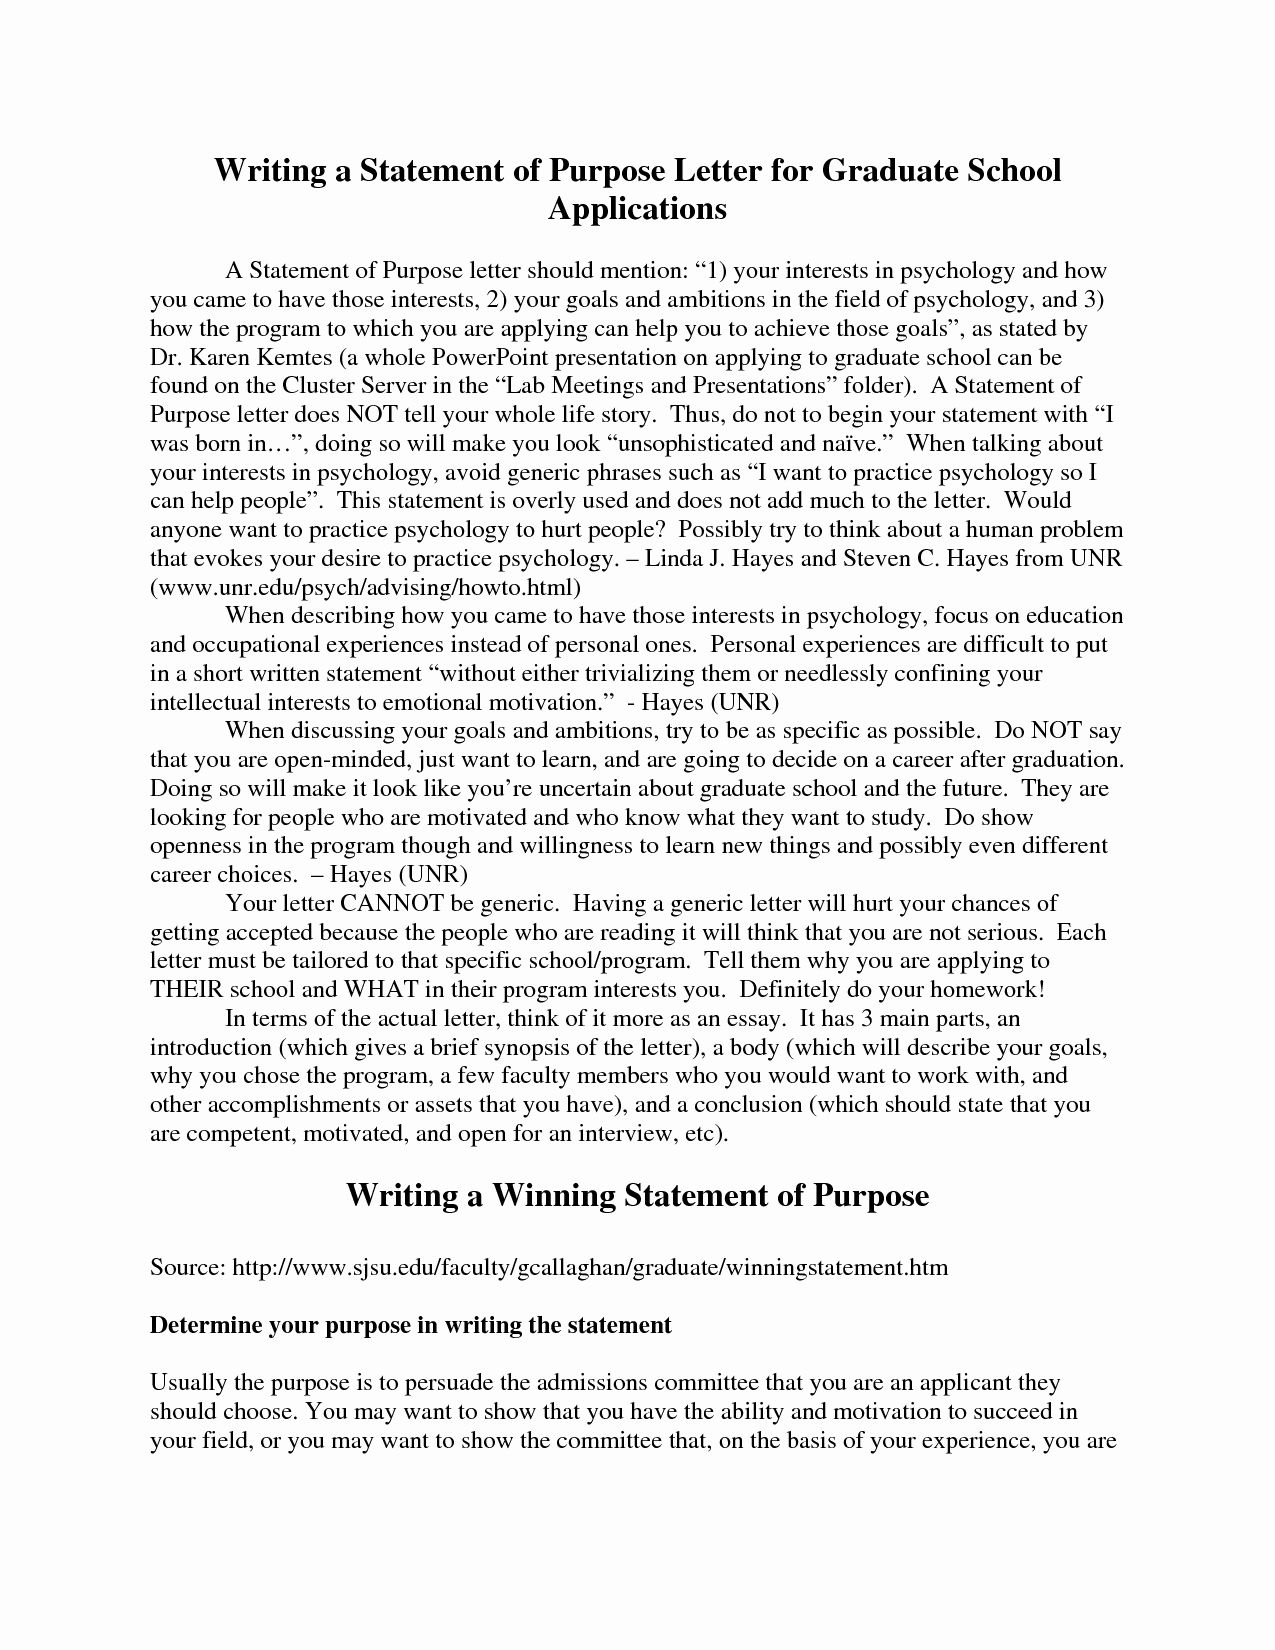 Goal Statement Sample Luxury Goal Statement For Nurse Practitioner Graduate School School Essay Essay Examples Sample Essay How to write a personal goal statement